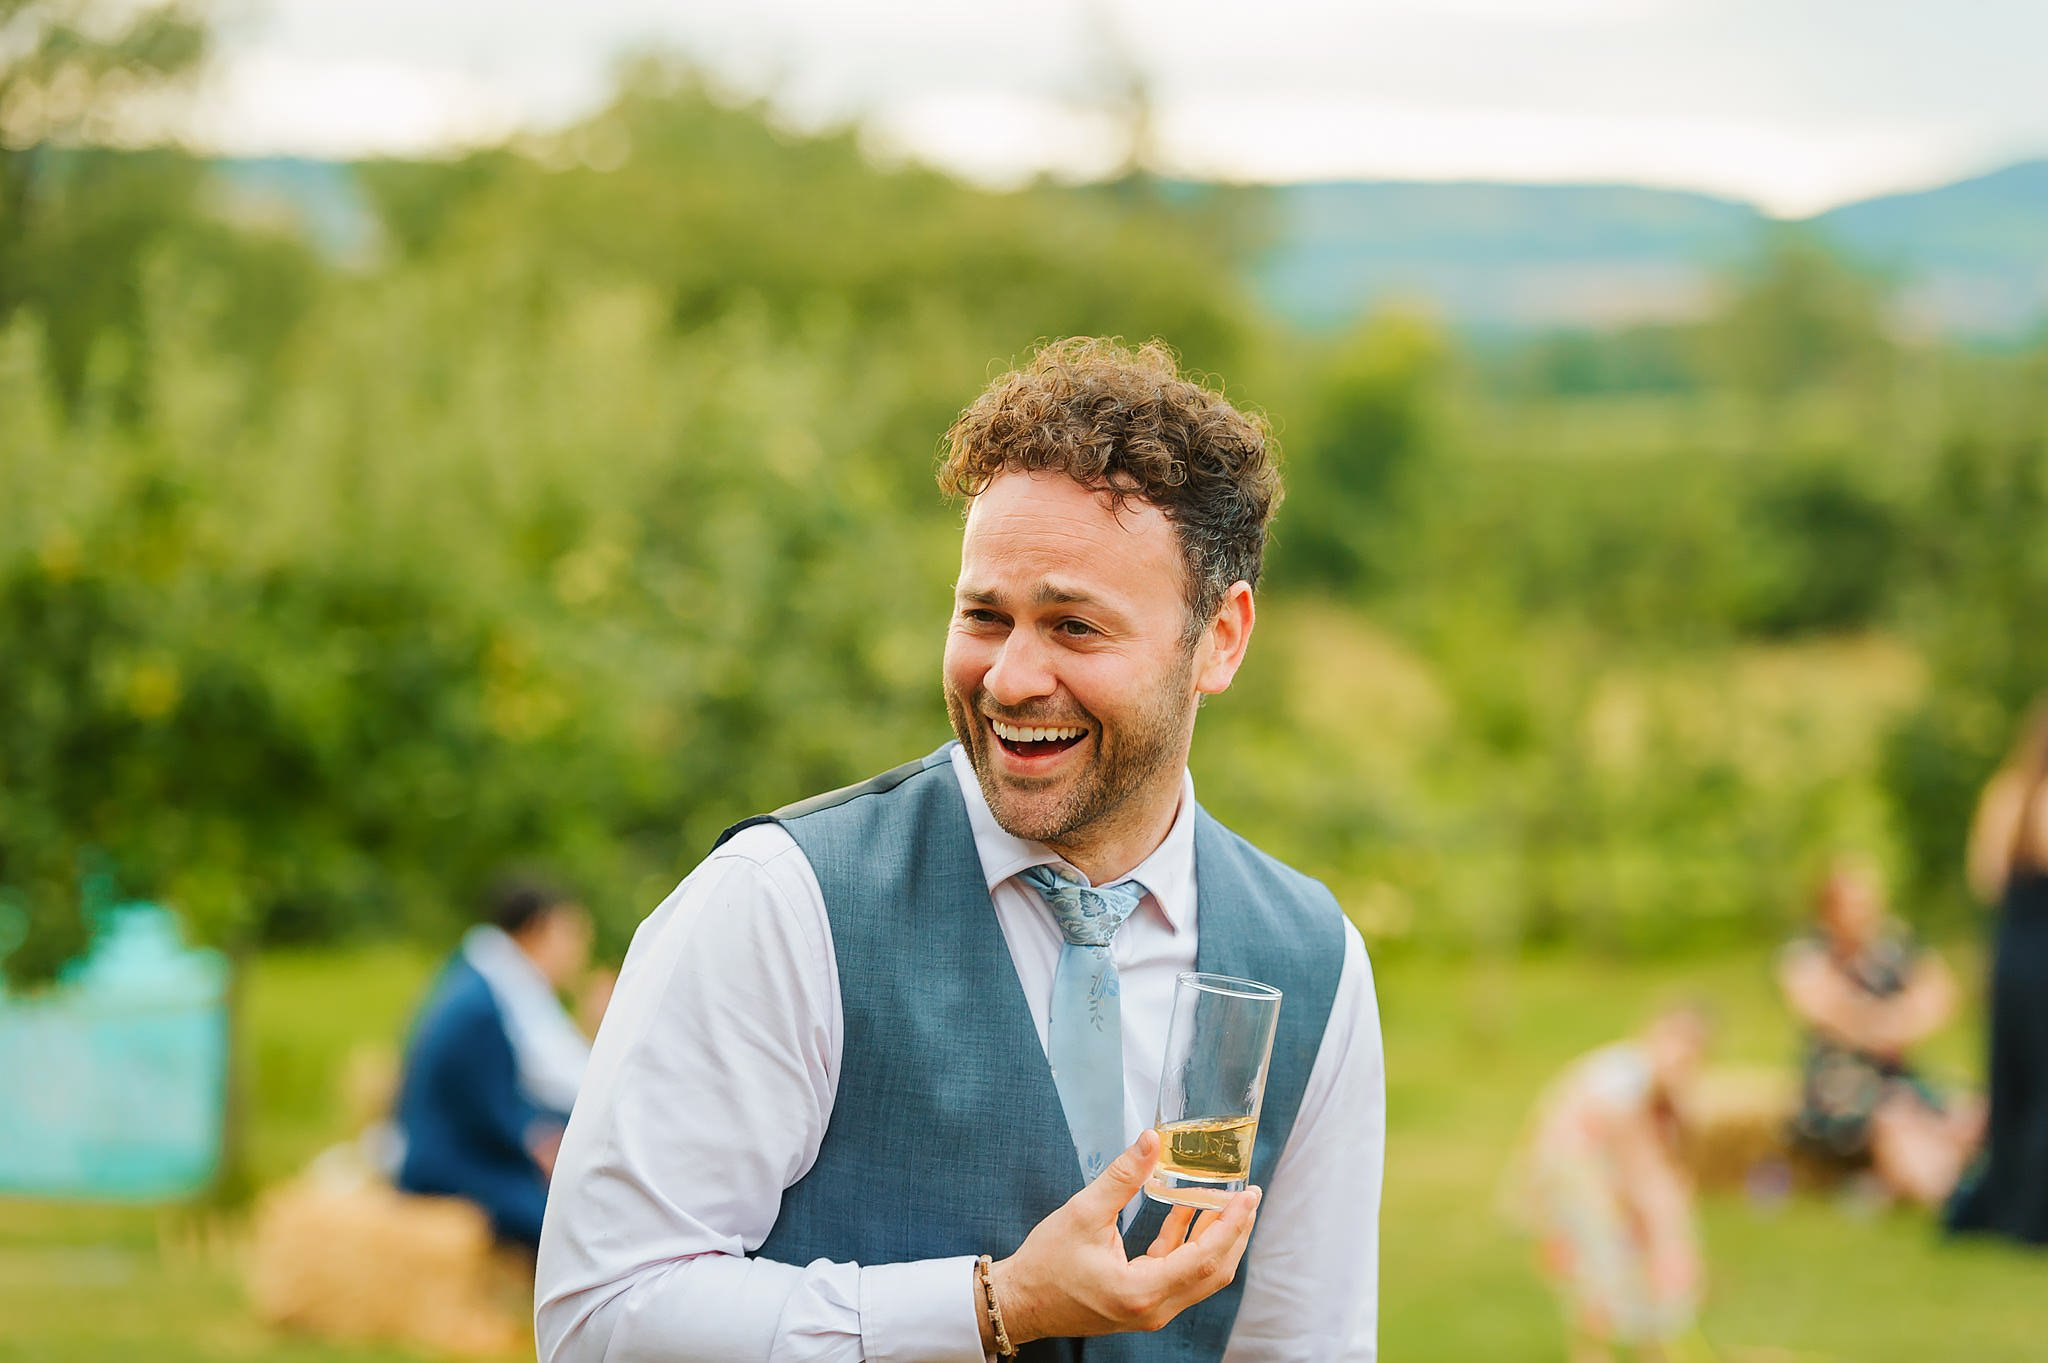 Wedding photography at Hellens Manor in Herefordshire, West Midlands | Shelley + Ian 120